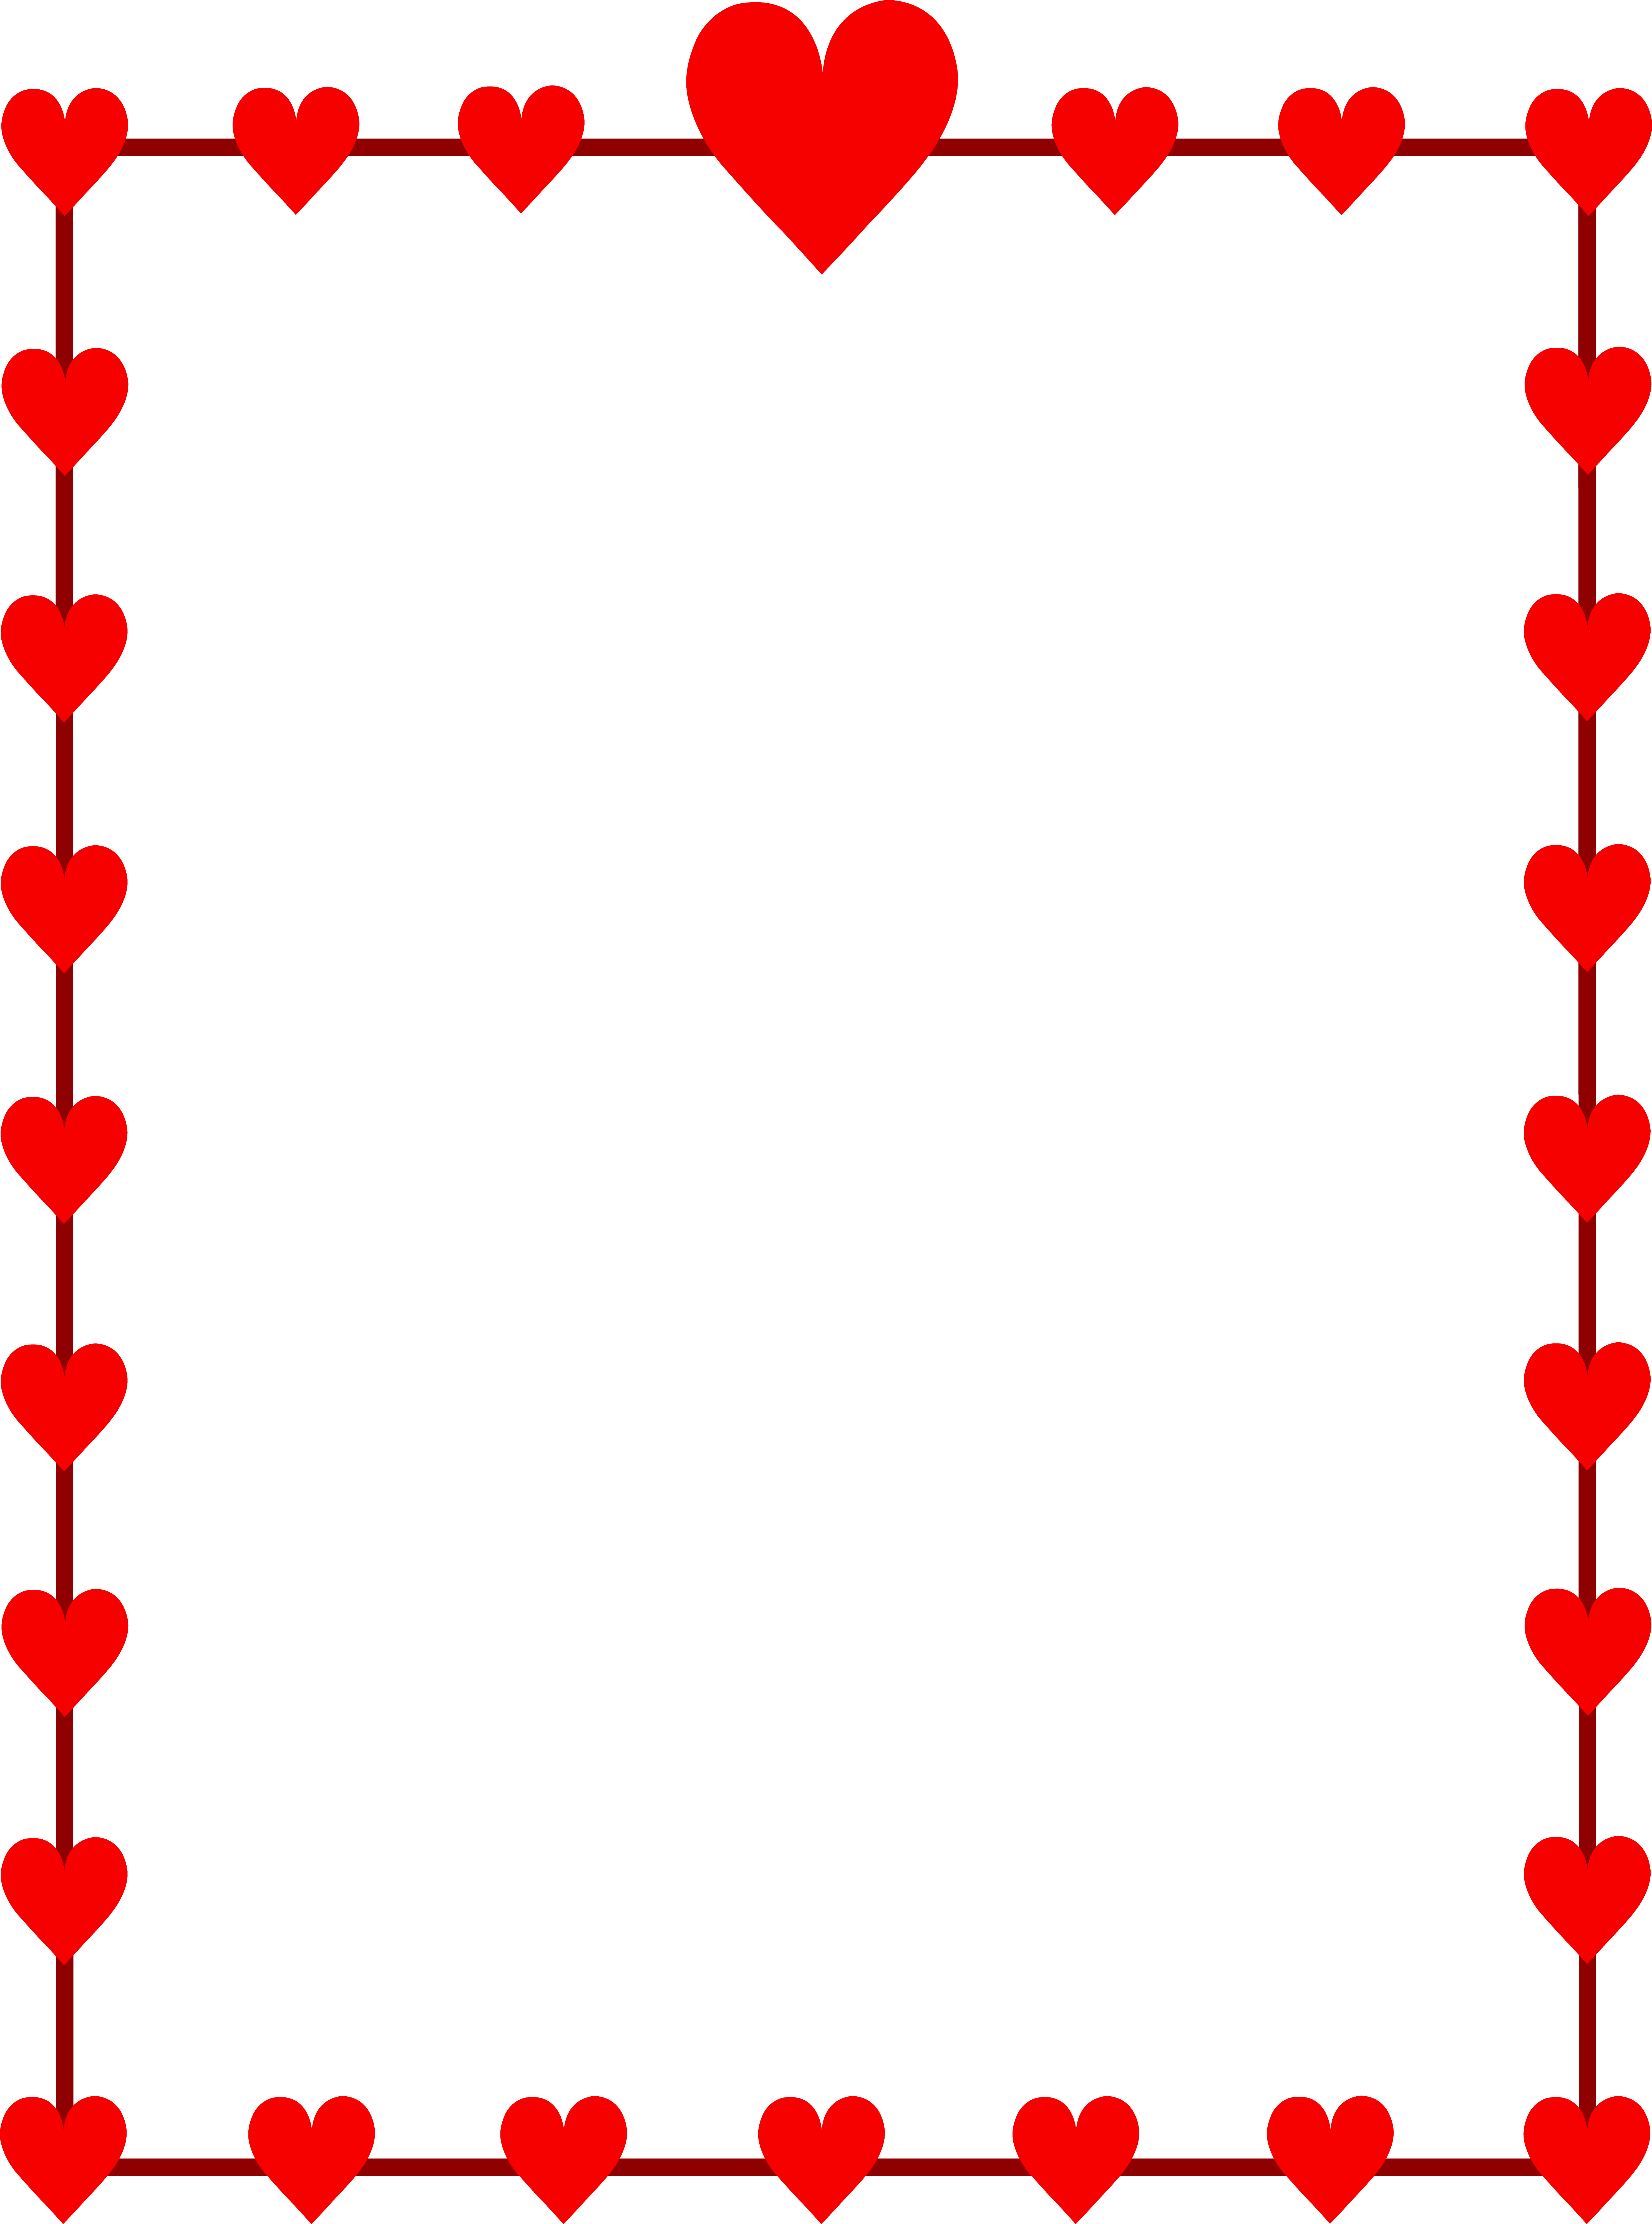 Cards clipart valentine card Heart made of Clipart Heart